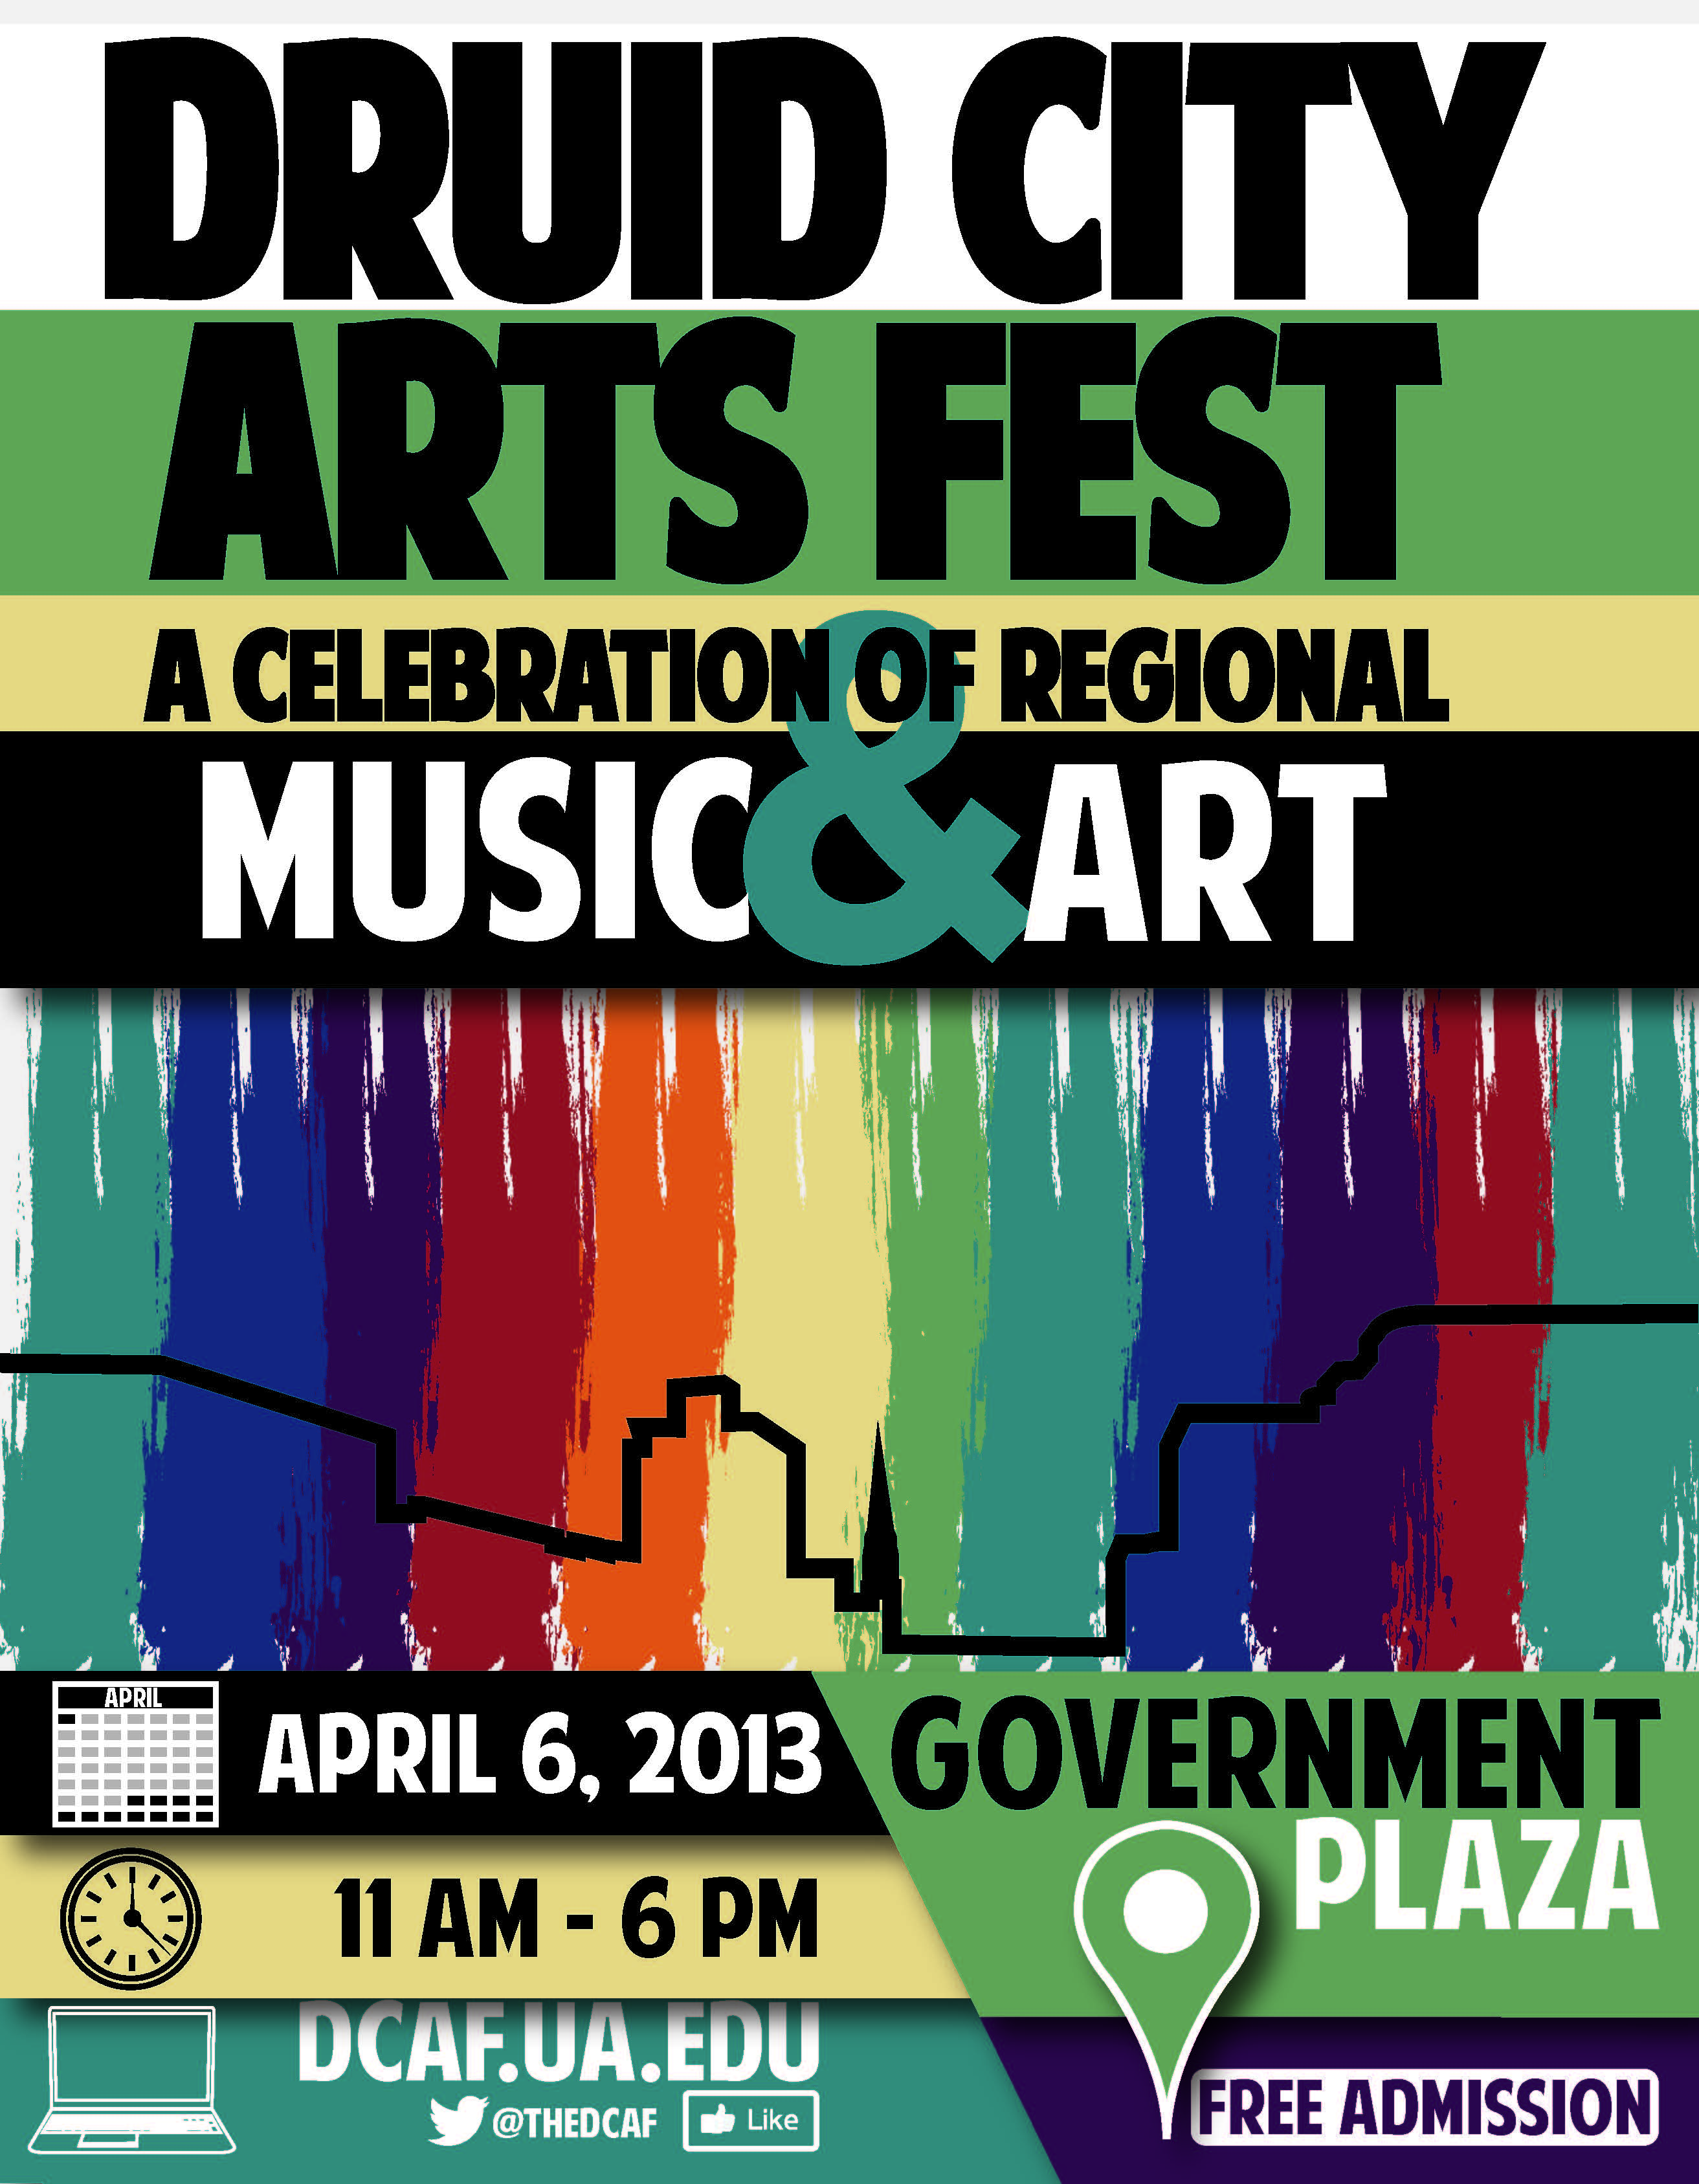 Druid City Arts Festival | March 24, 2012 | Tuscaloosa, AL